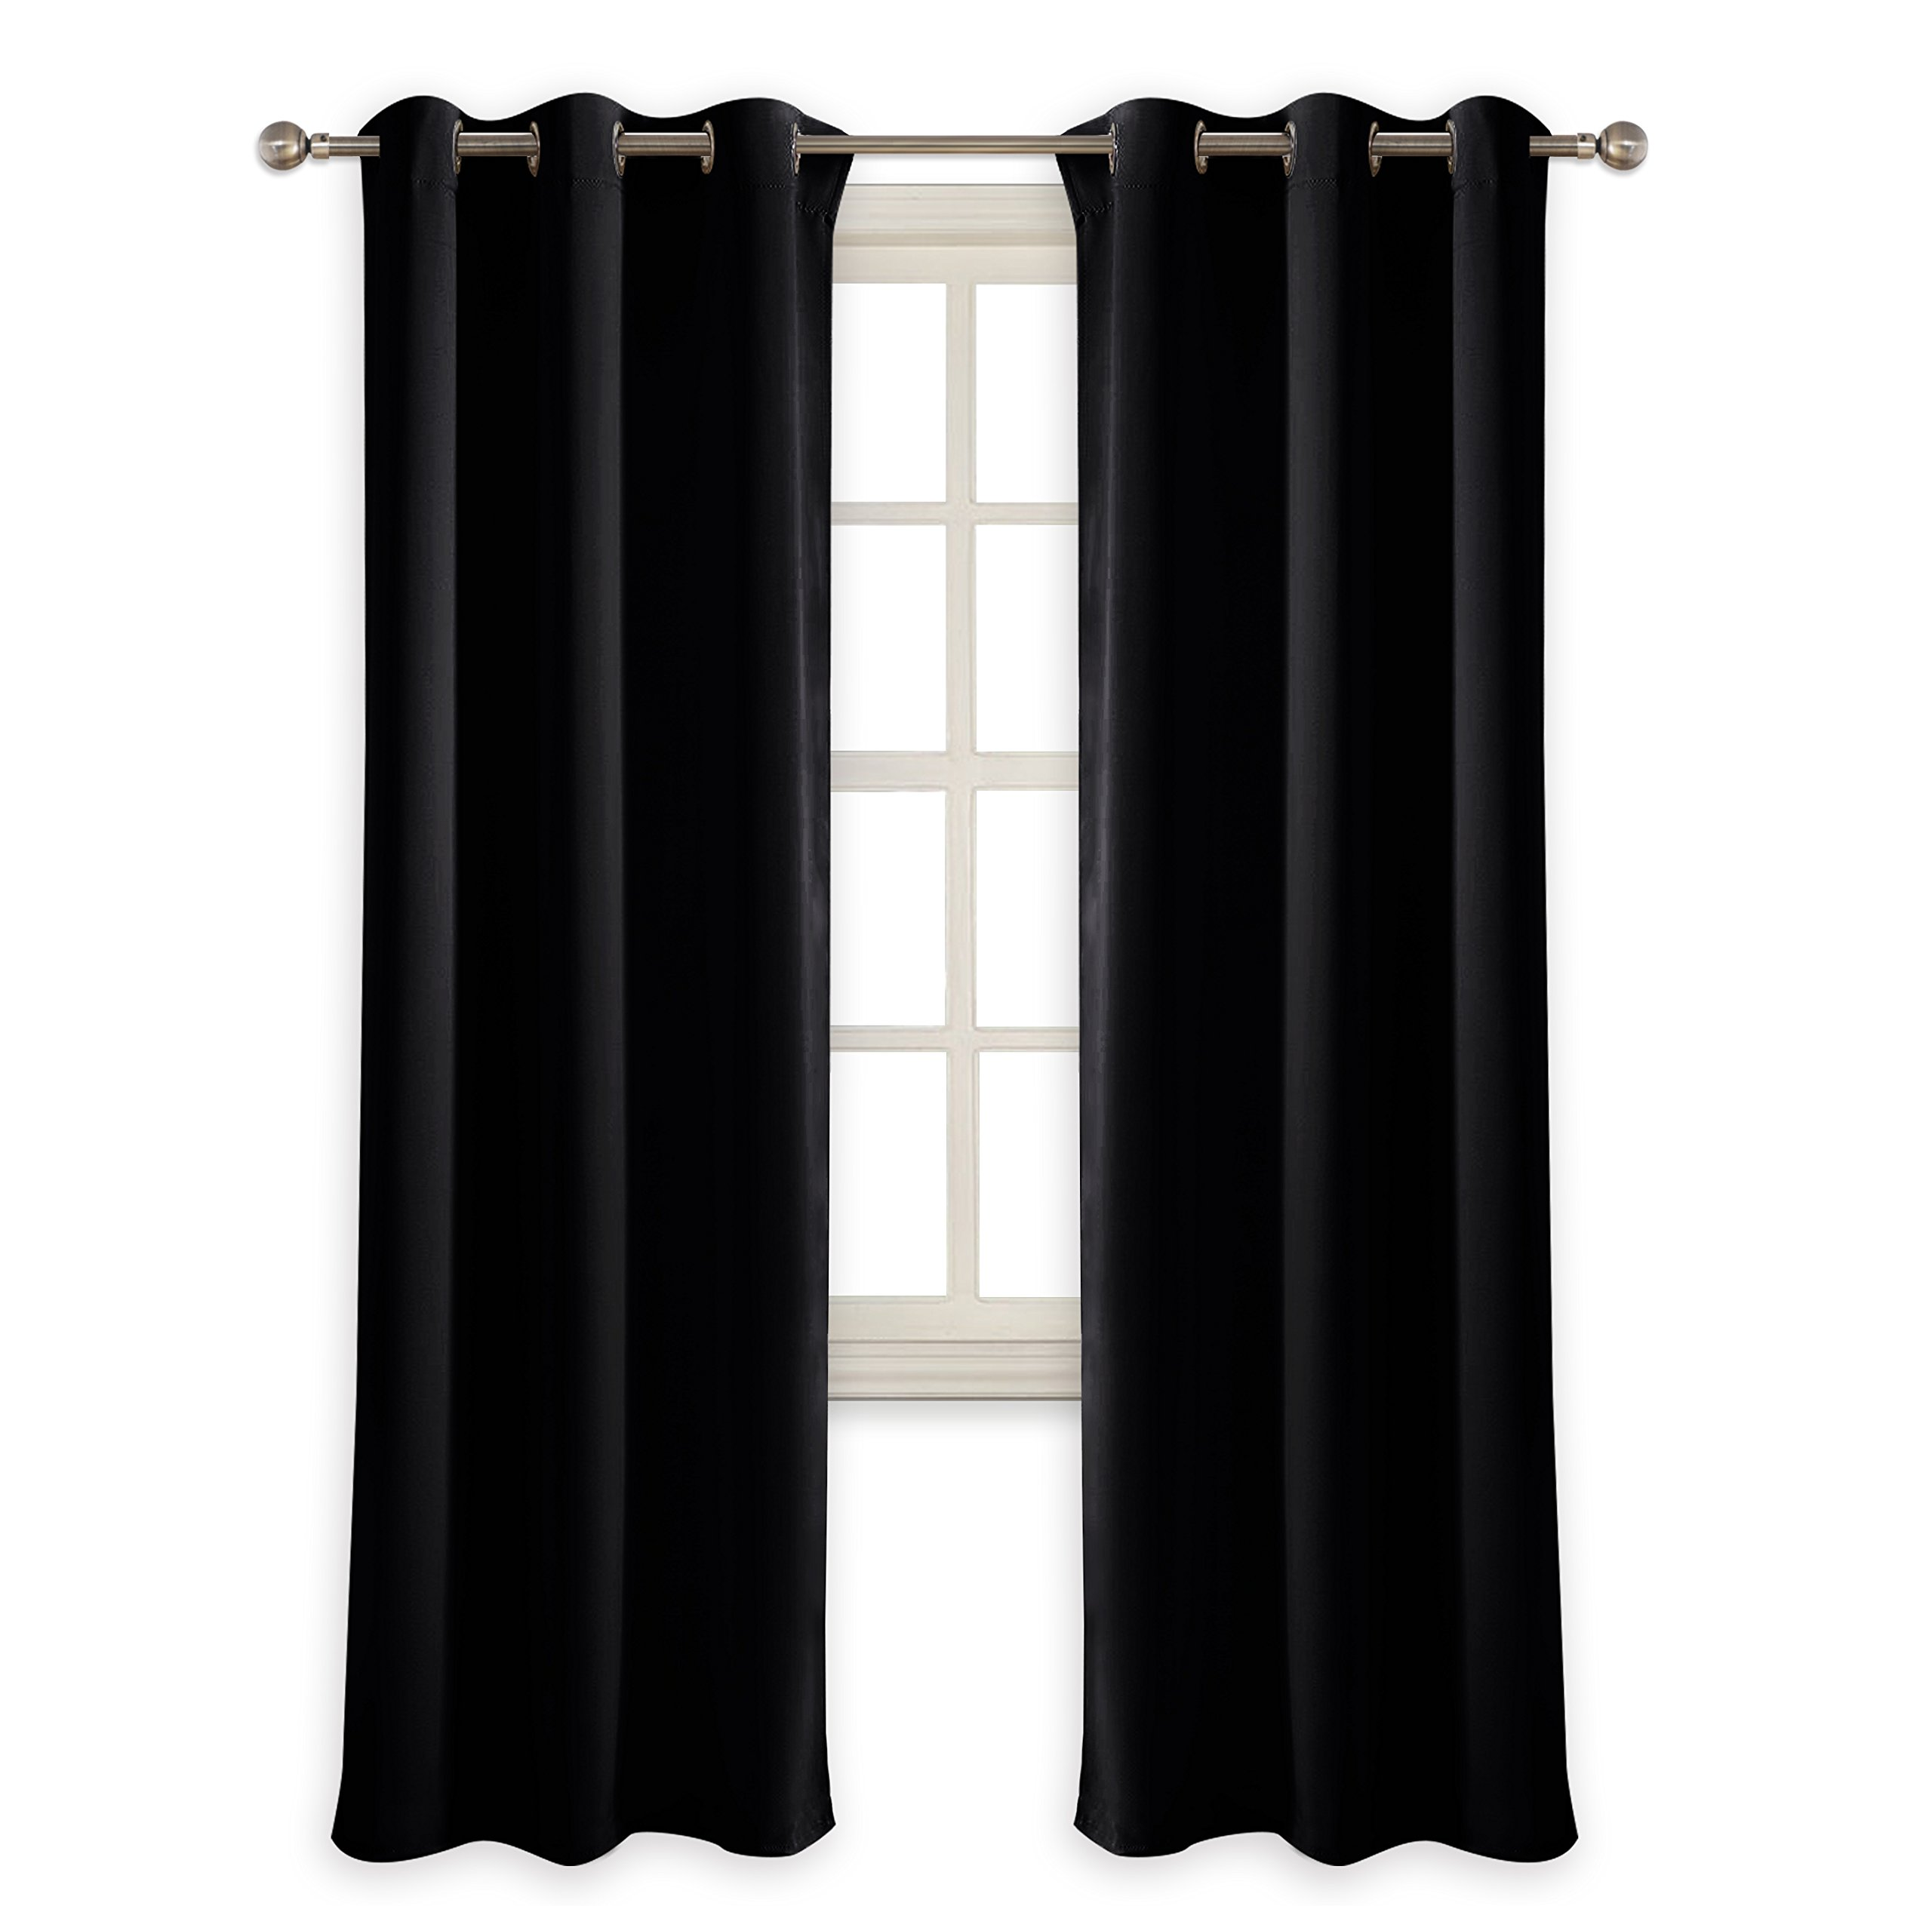 PONY DANCE Bedroom Window Curtains - Blackout Dark Curtain Panels Energy Saving Light Blocking Thermal Drapes/Home Decoration Modern for Kids Nursery Good Sleep, 42 Wide by 72 in Long, Black, 2 Pcs